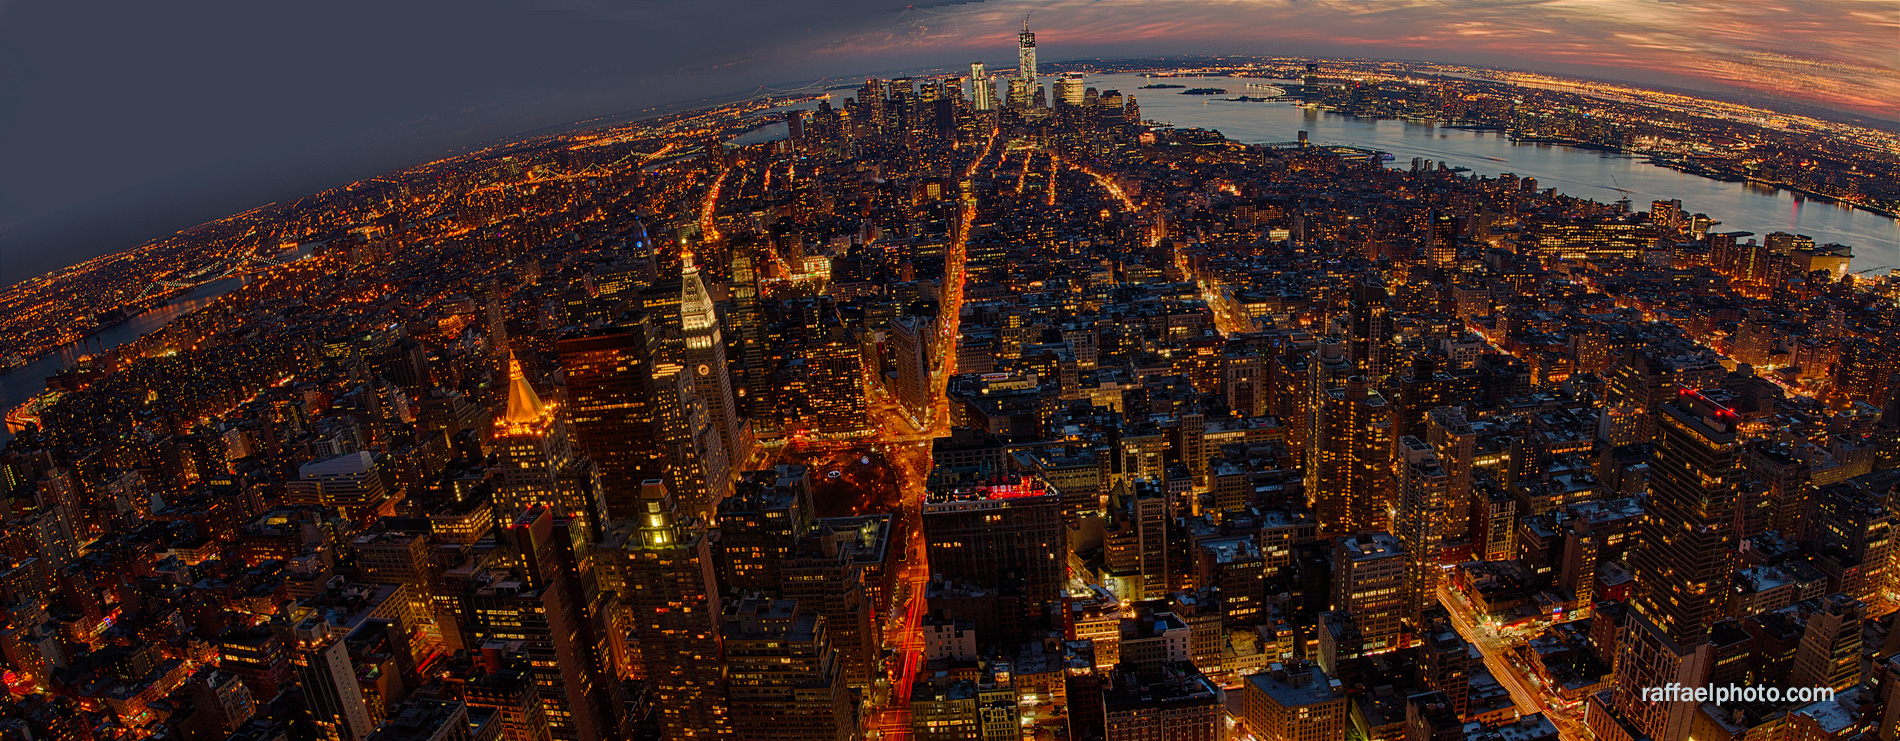 new-york-city-at-night-skyline-panorama2